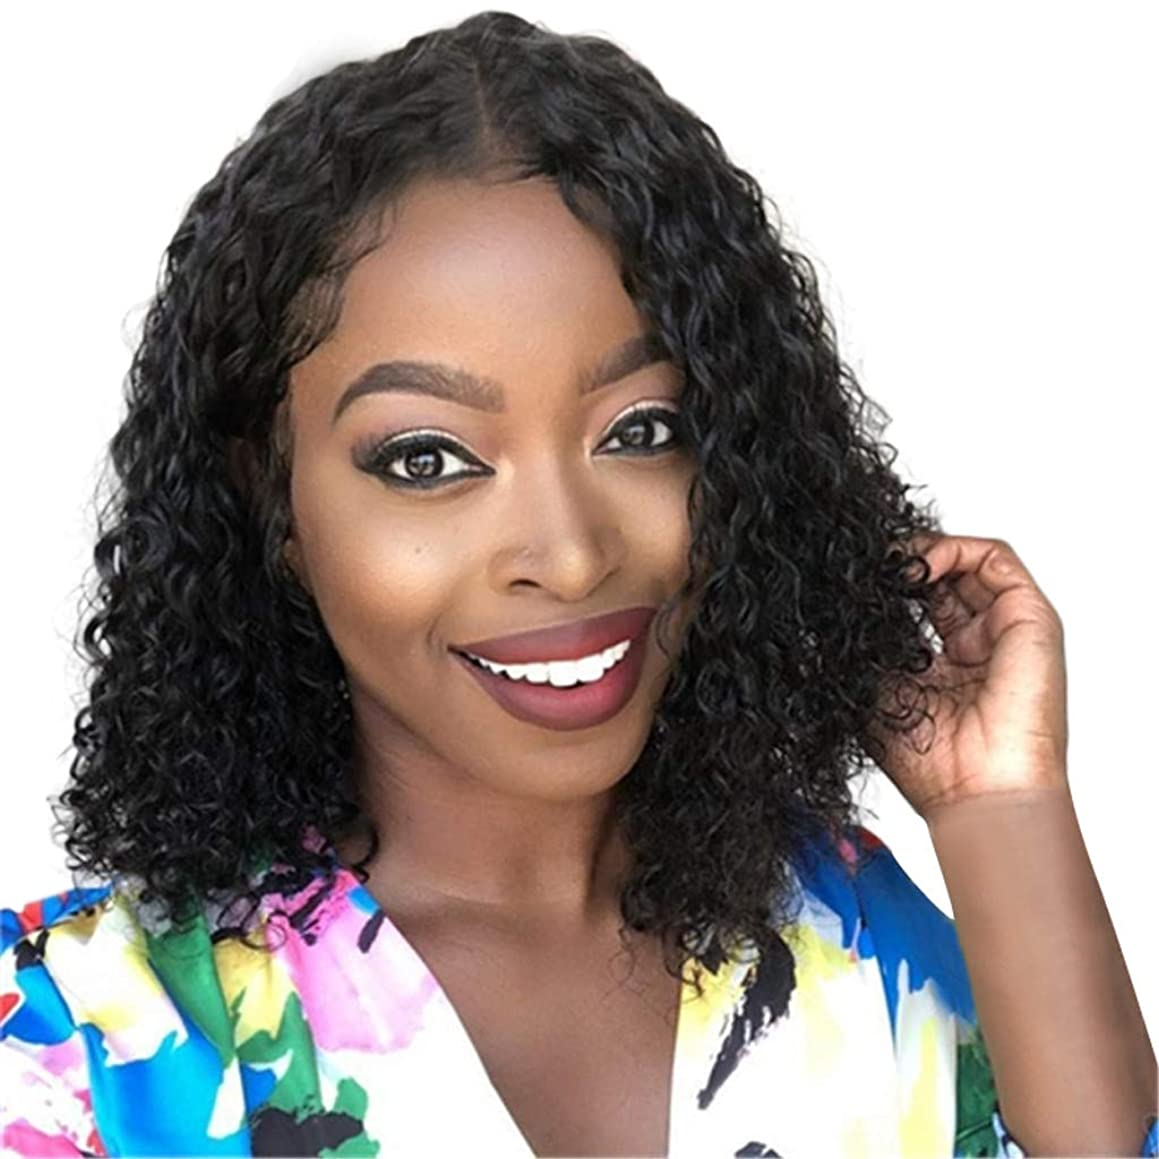 YOMXL Short Bob Wave Black Virgin Hair Brazilian Human Hair Lace Front Wigs Natural Color Baby Hair for African Americans14 Inches